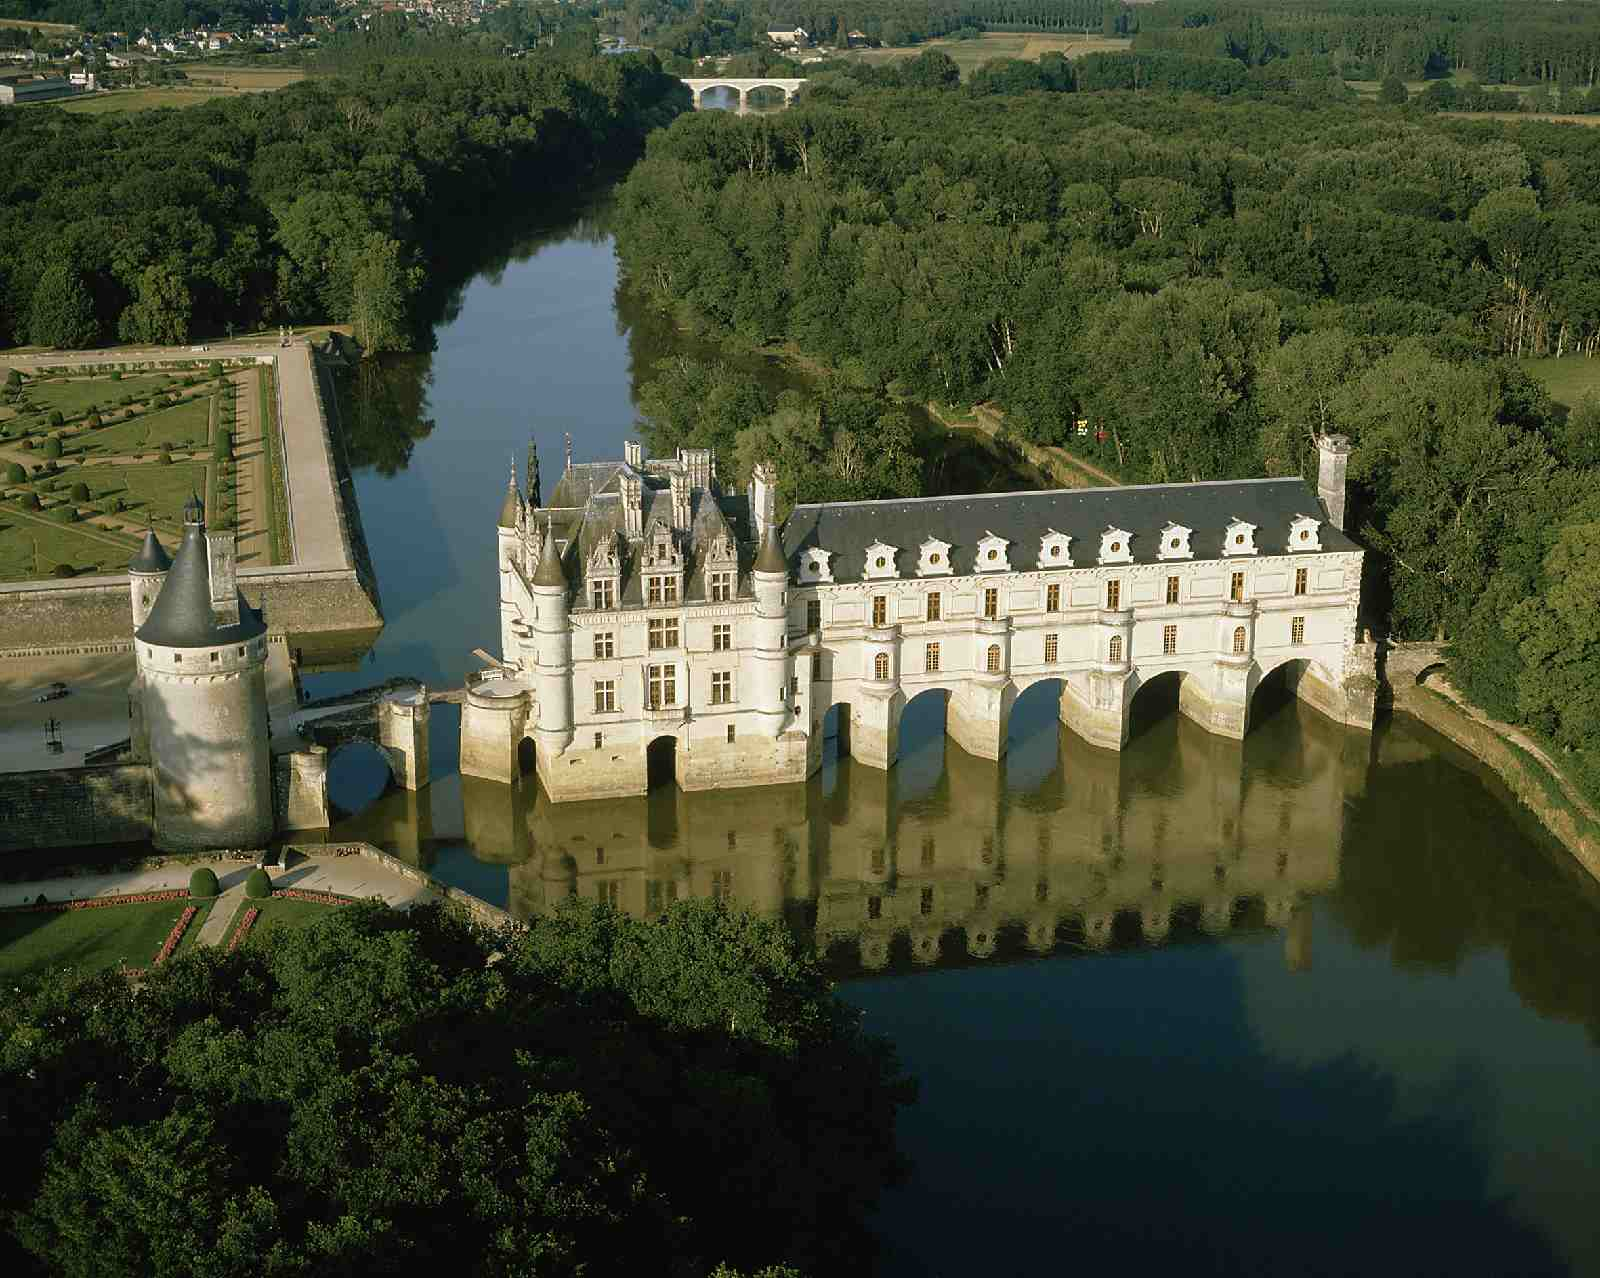 Chenonceau Chateau in the Loire Valley